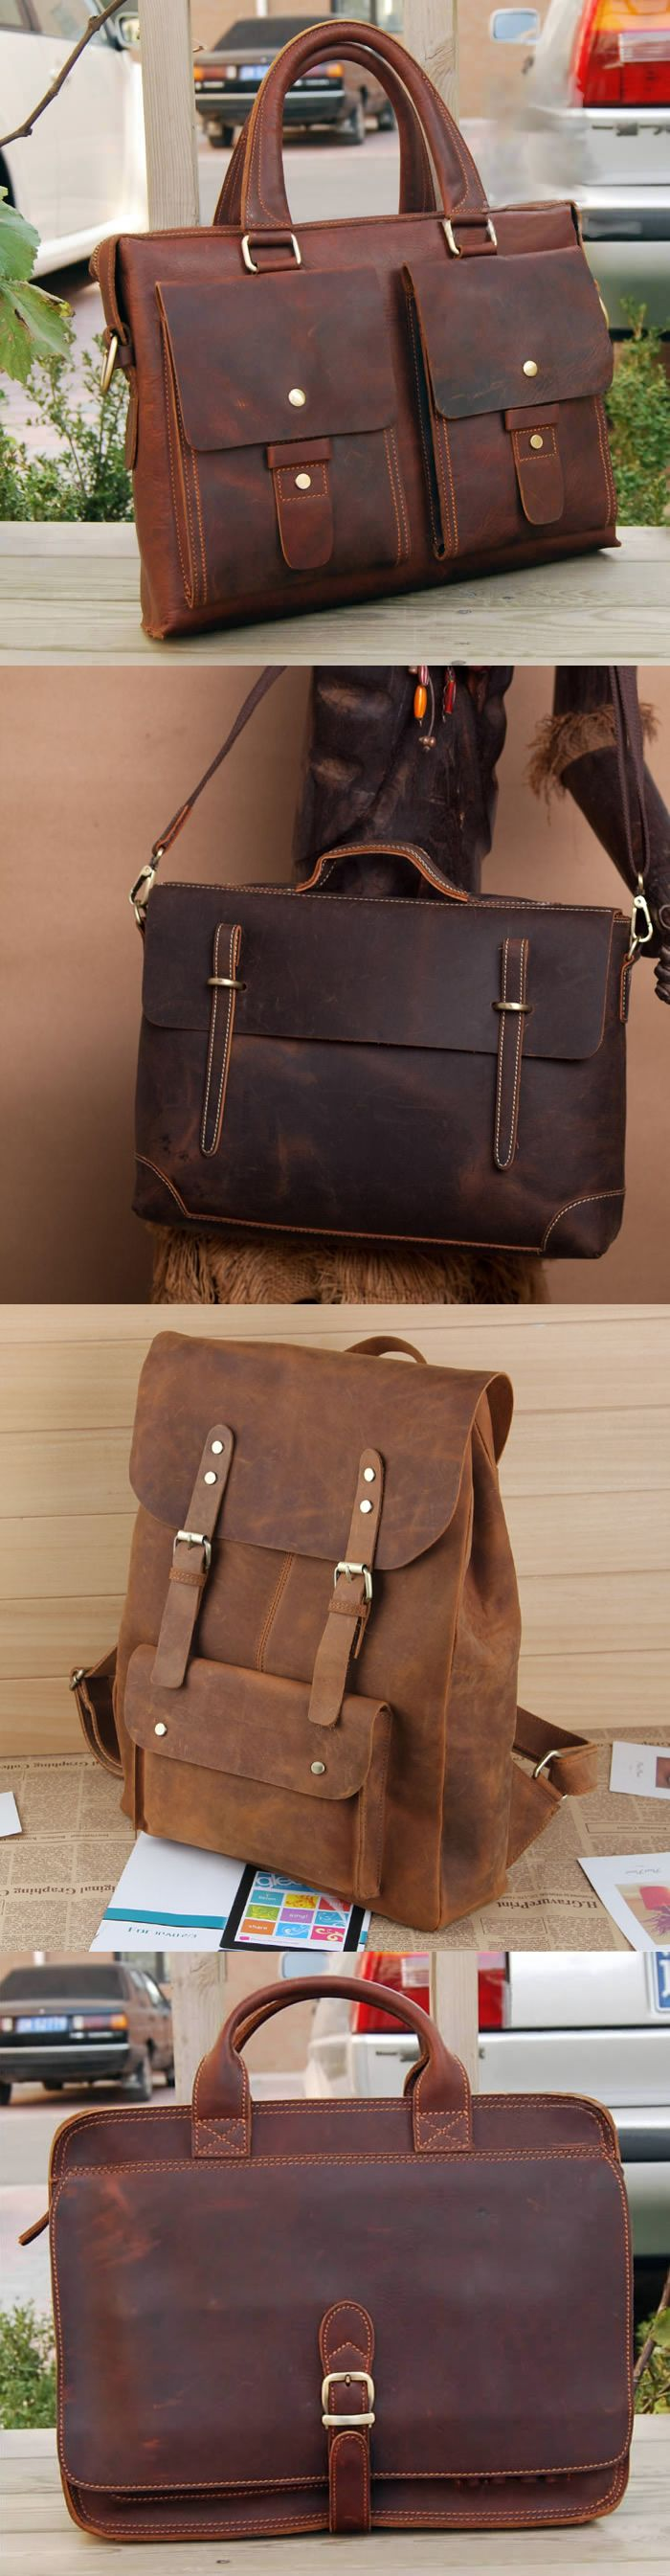 Vintage Leather Briefcase / Messenger Bag / Satchel / Backpack / Laptop Bag / Travel Bag, Men's Bag Women's Bag